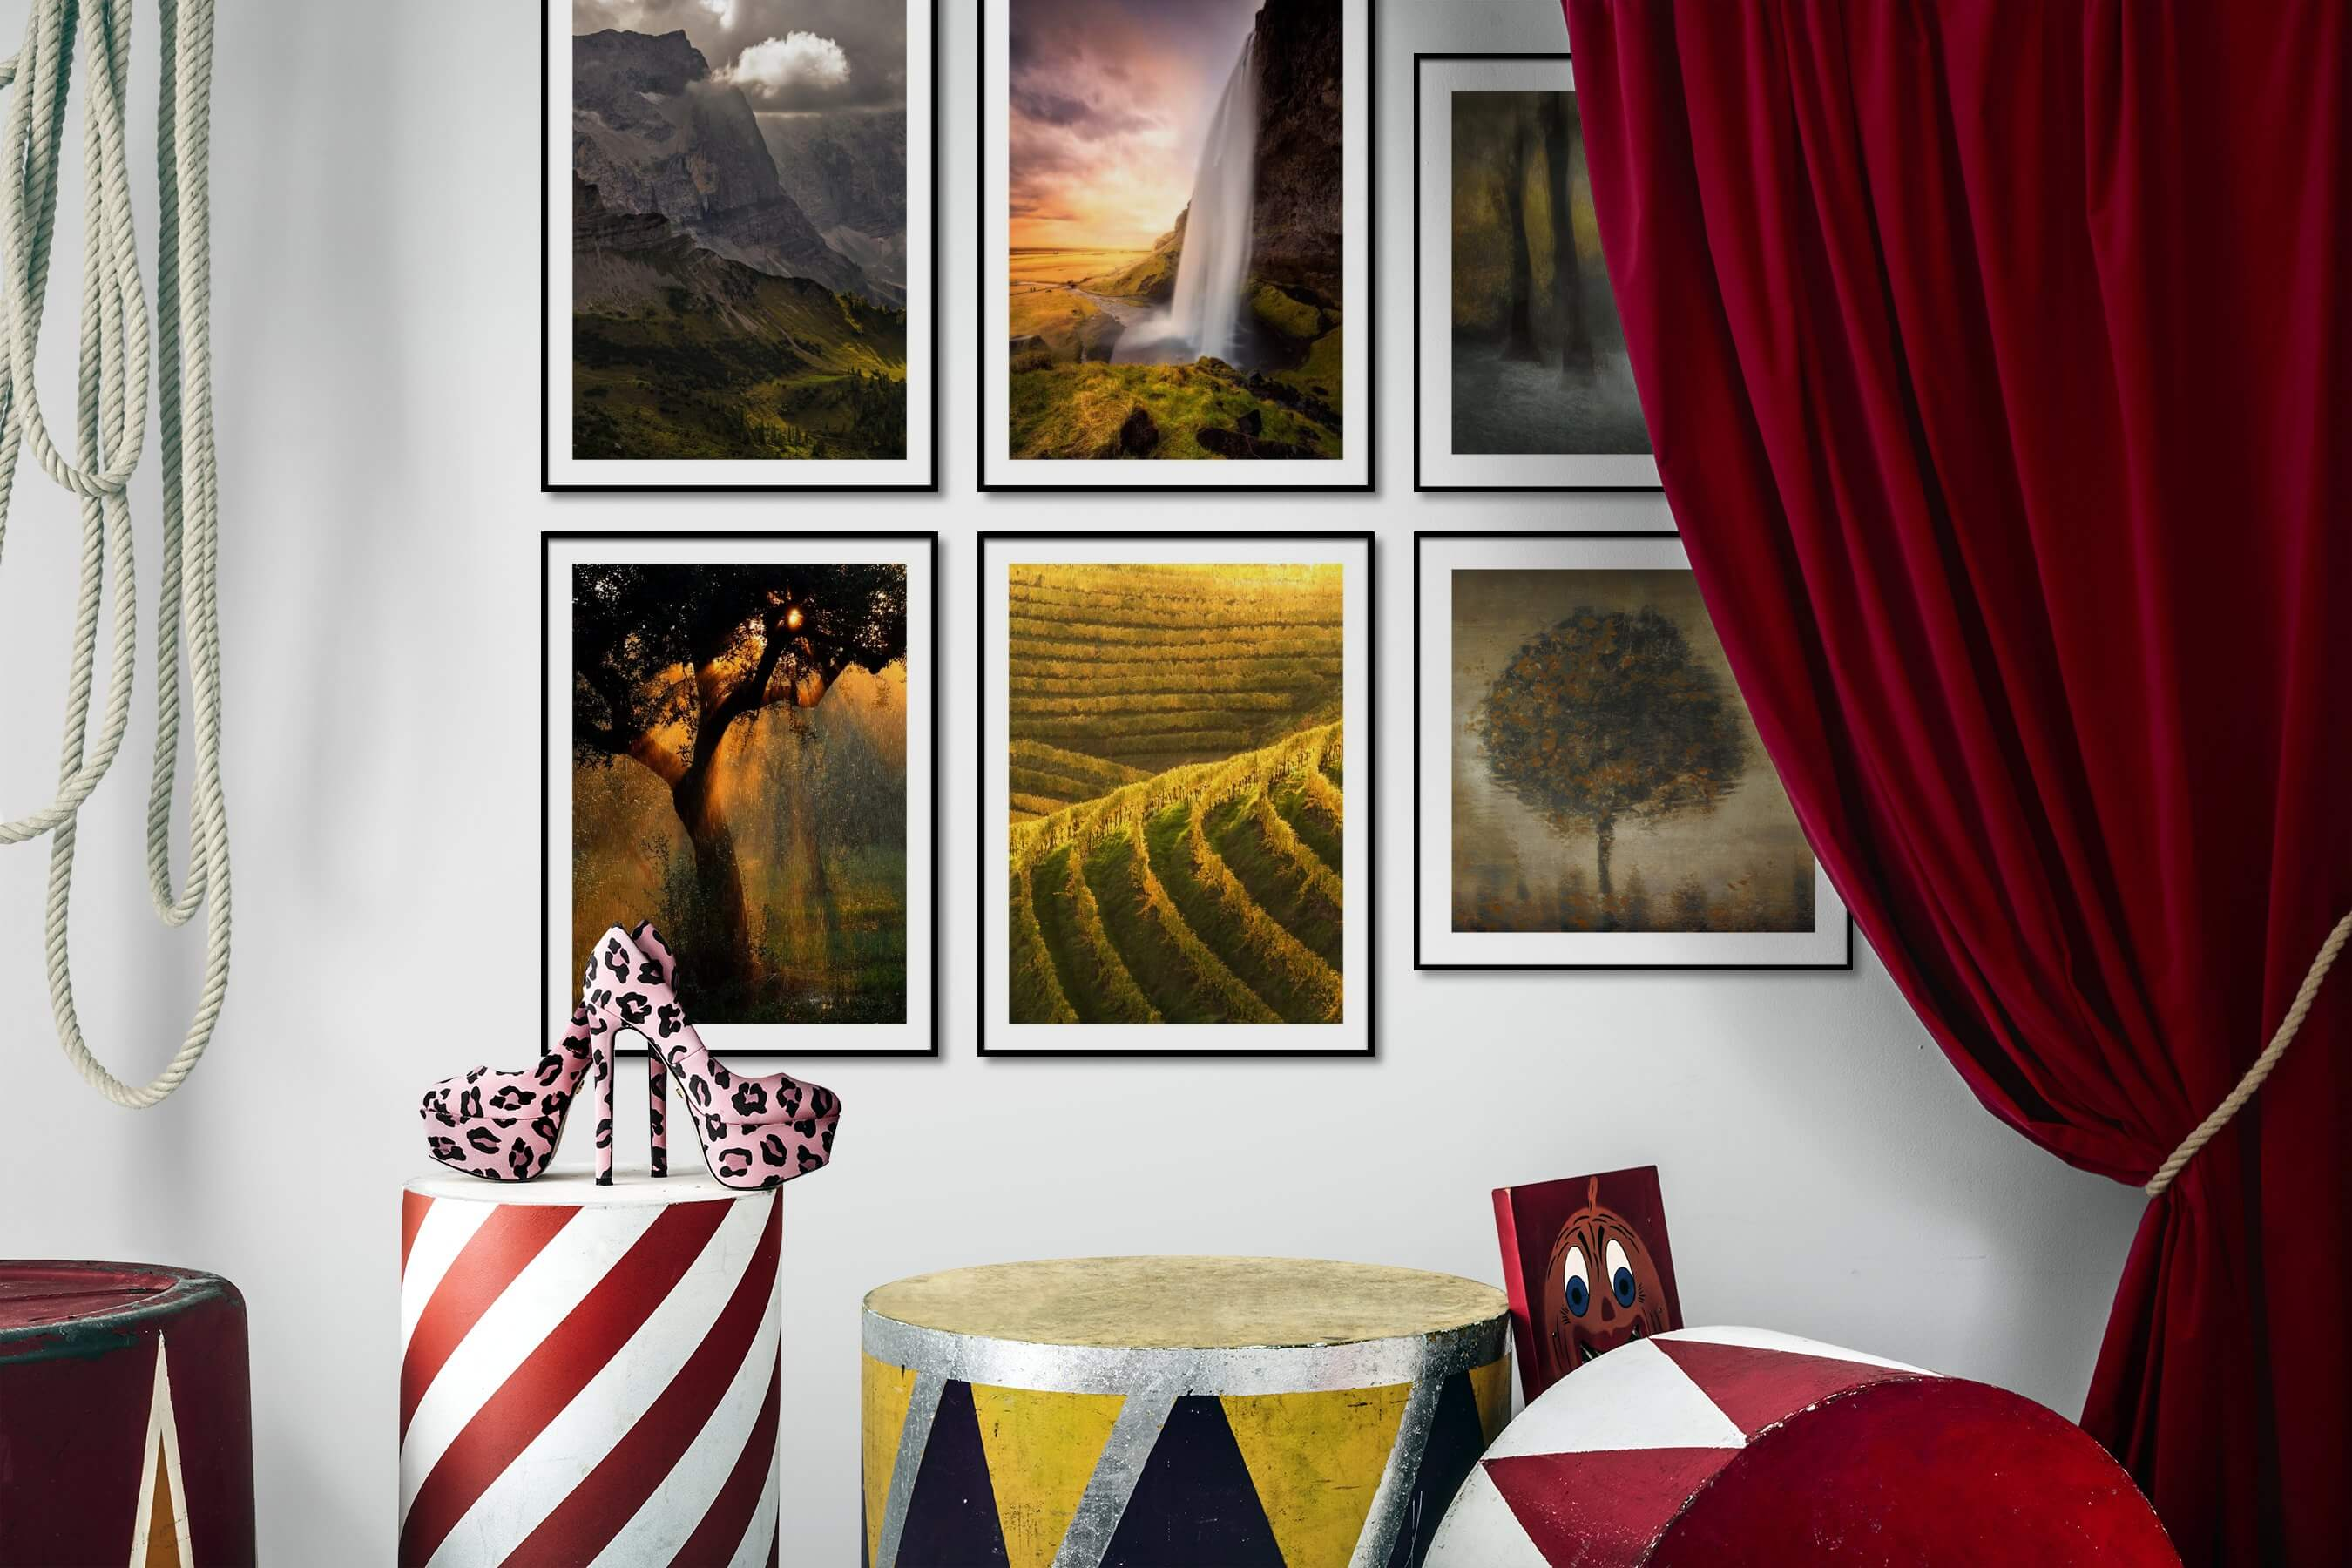 Gallery wall idea with six framed pictures arranged on a wall depicting Nature, Mindfulness, For the Moderate, Country Life, and Vintage